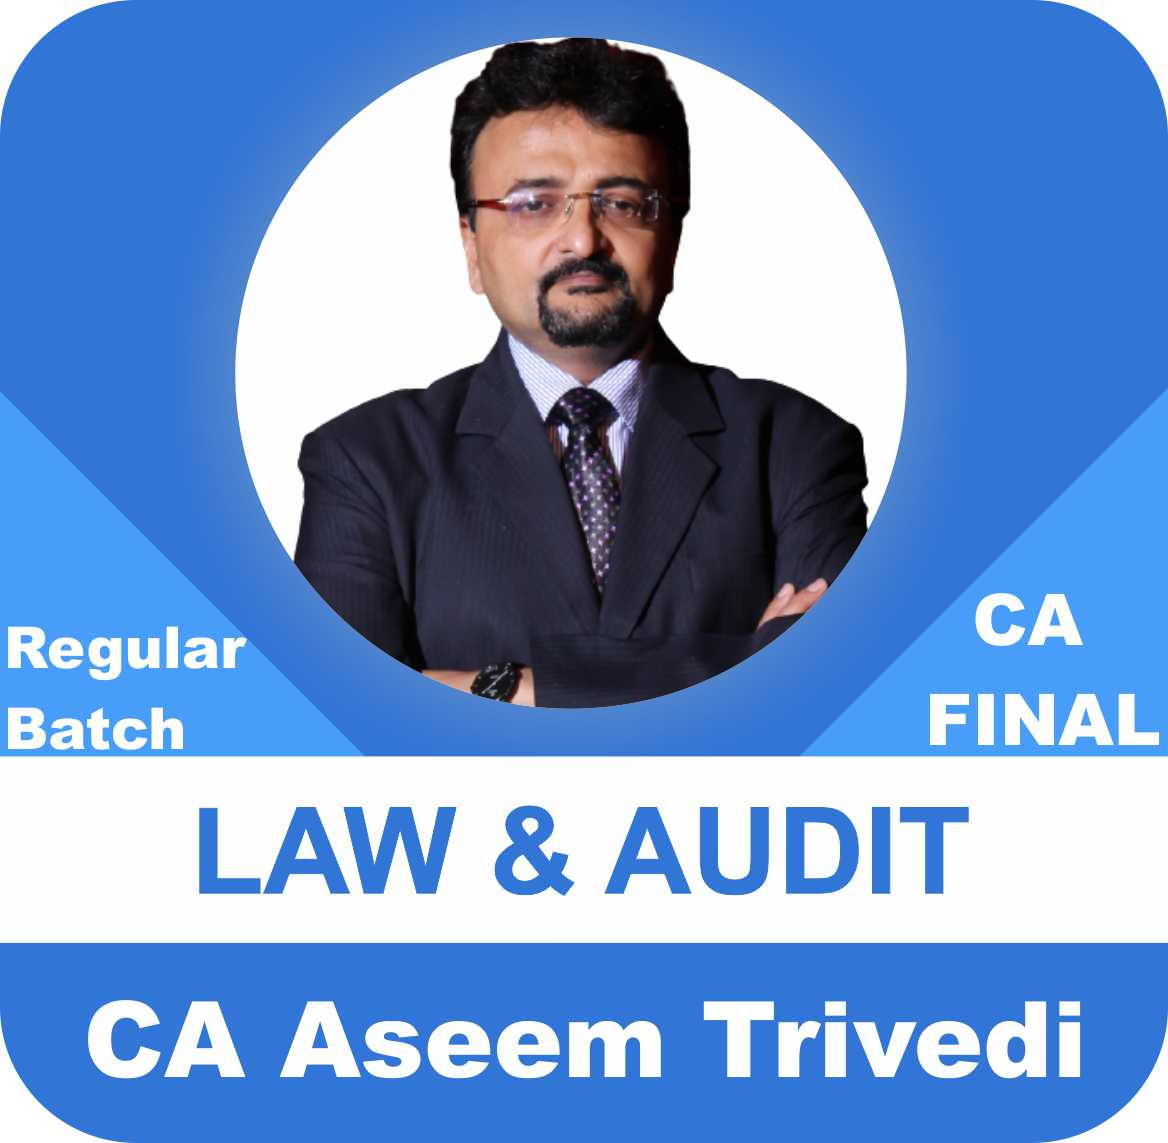 Auditing and Laws Combo Regular Batch